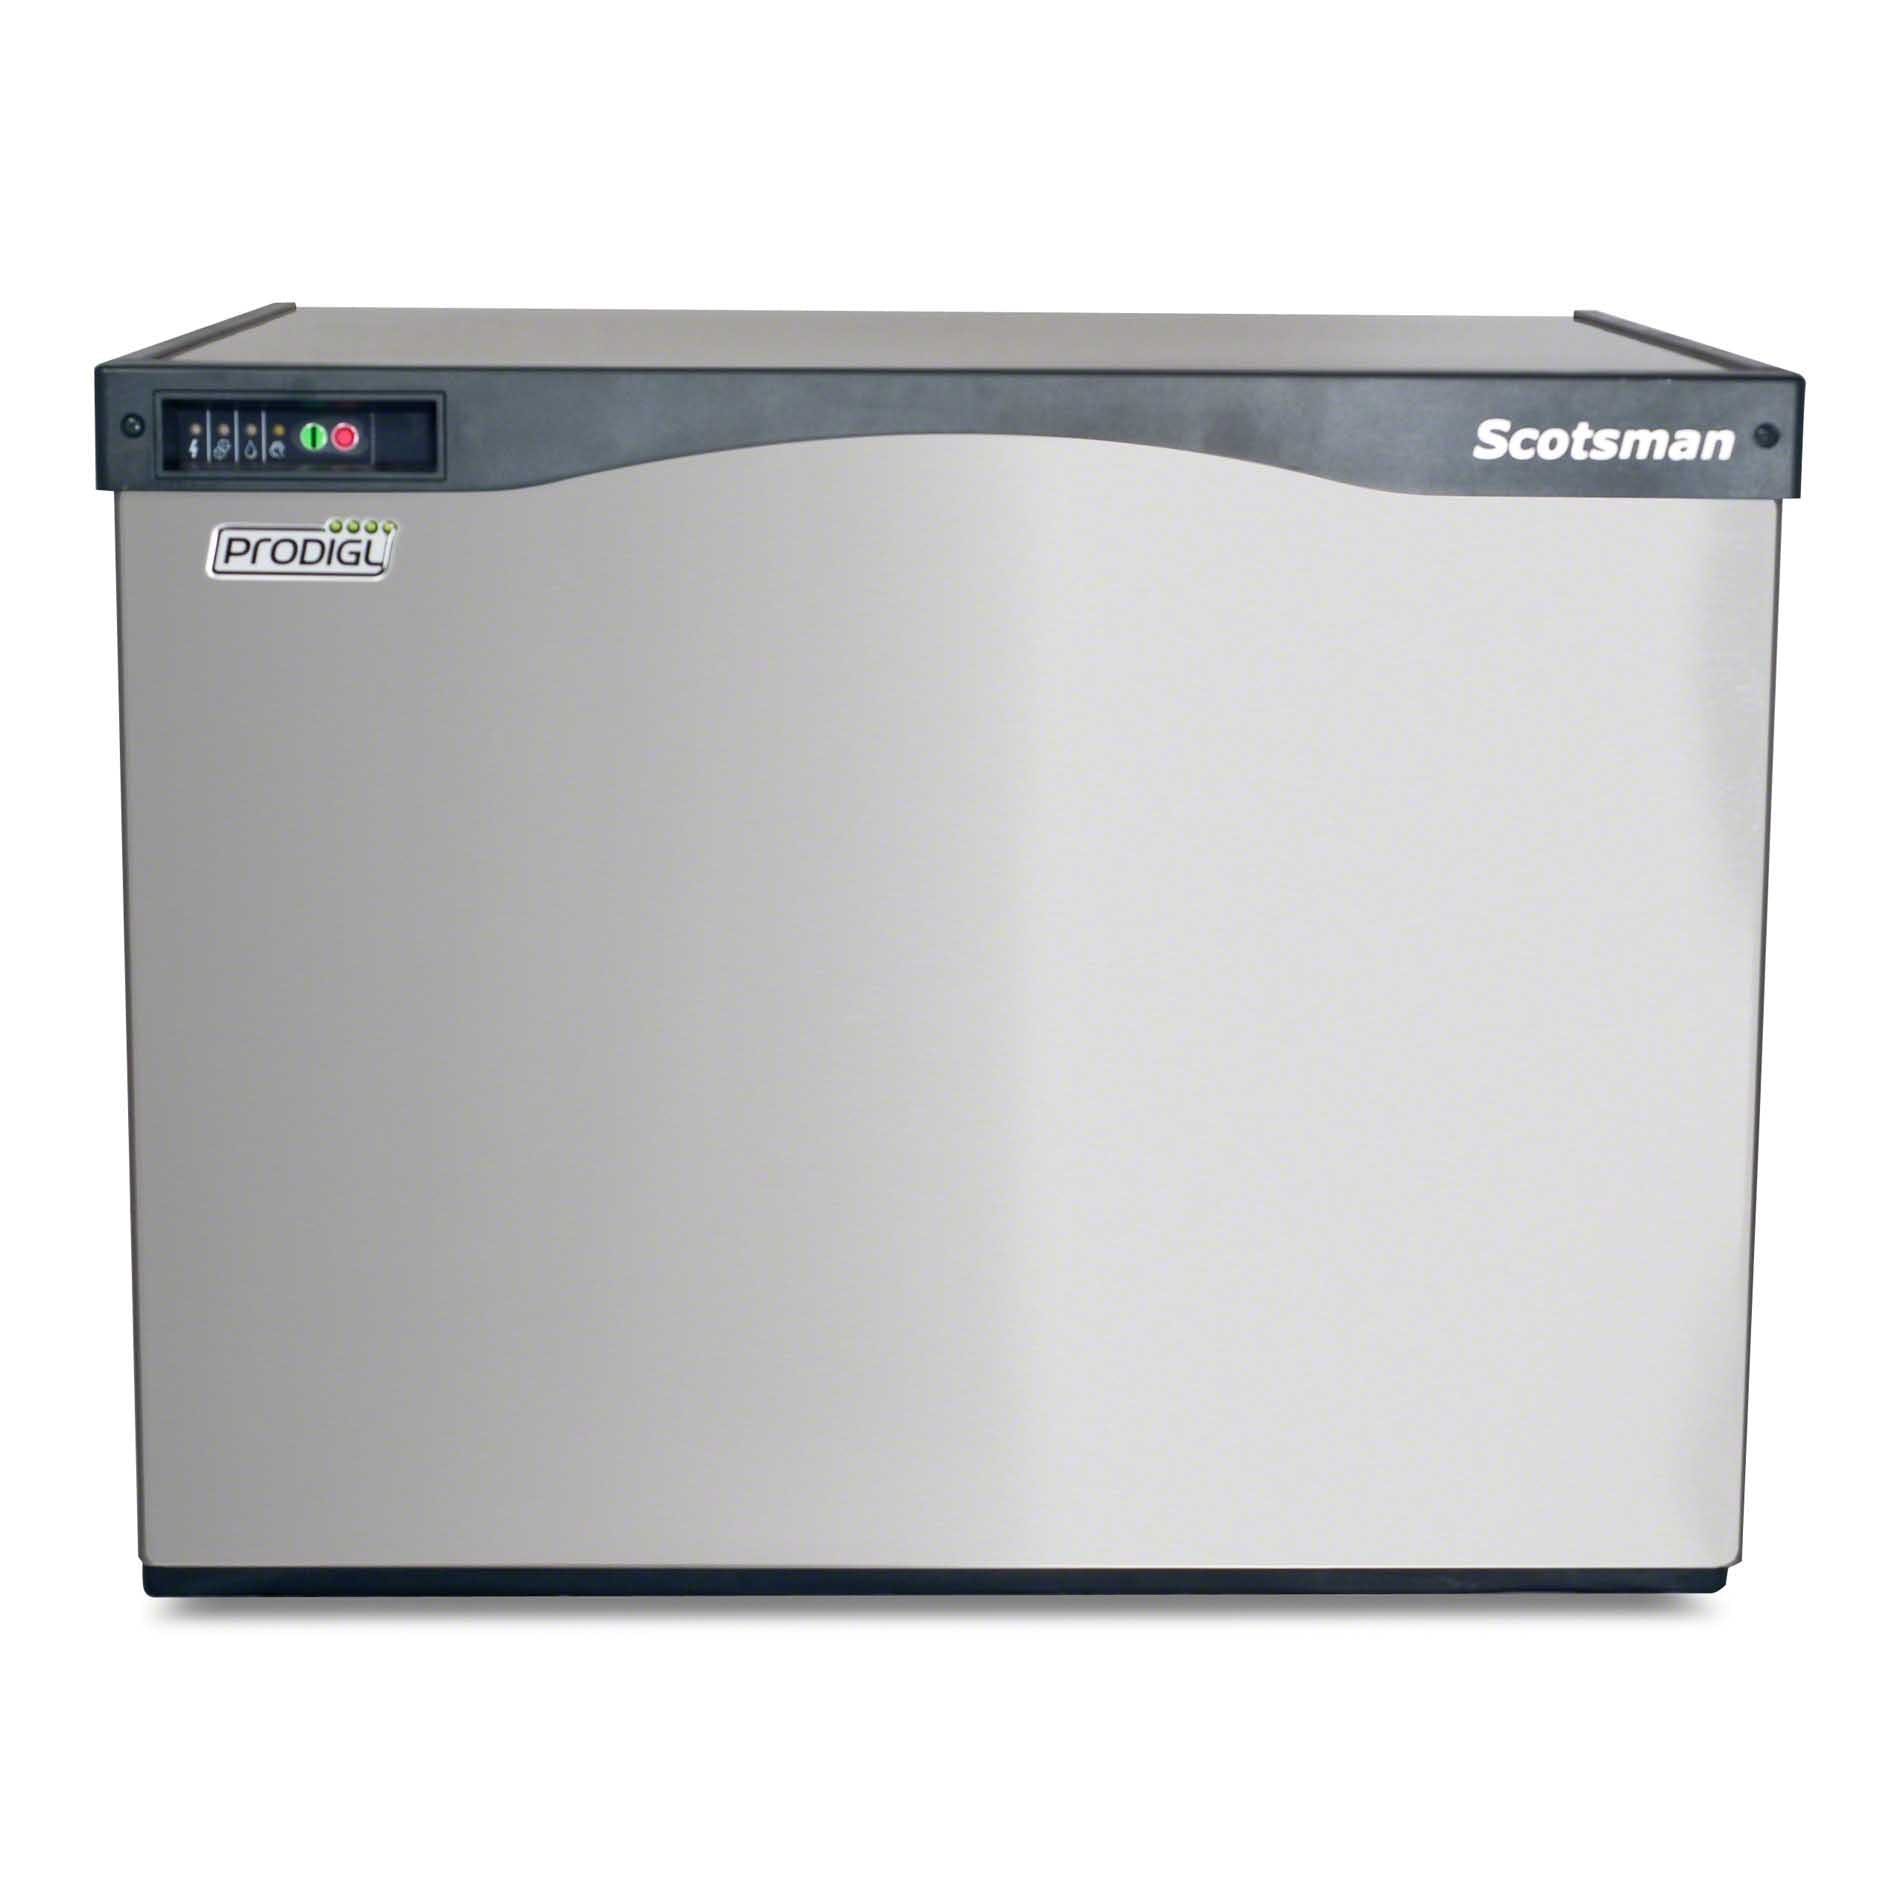 Scotsman - C0630MR-32A 684 lb Full Size Cube Ice Machine - Prodigy Series - sold by Food Service Warehouse